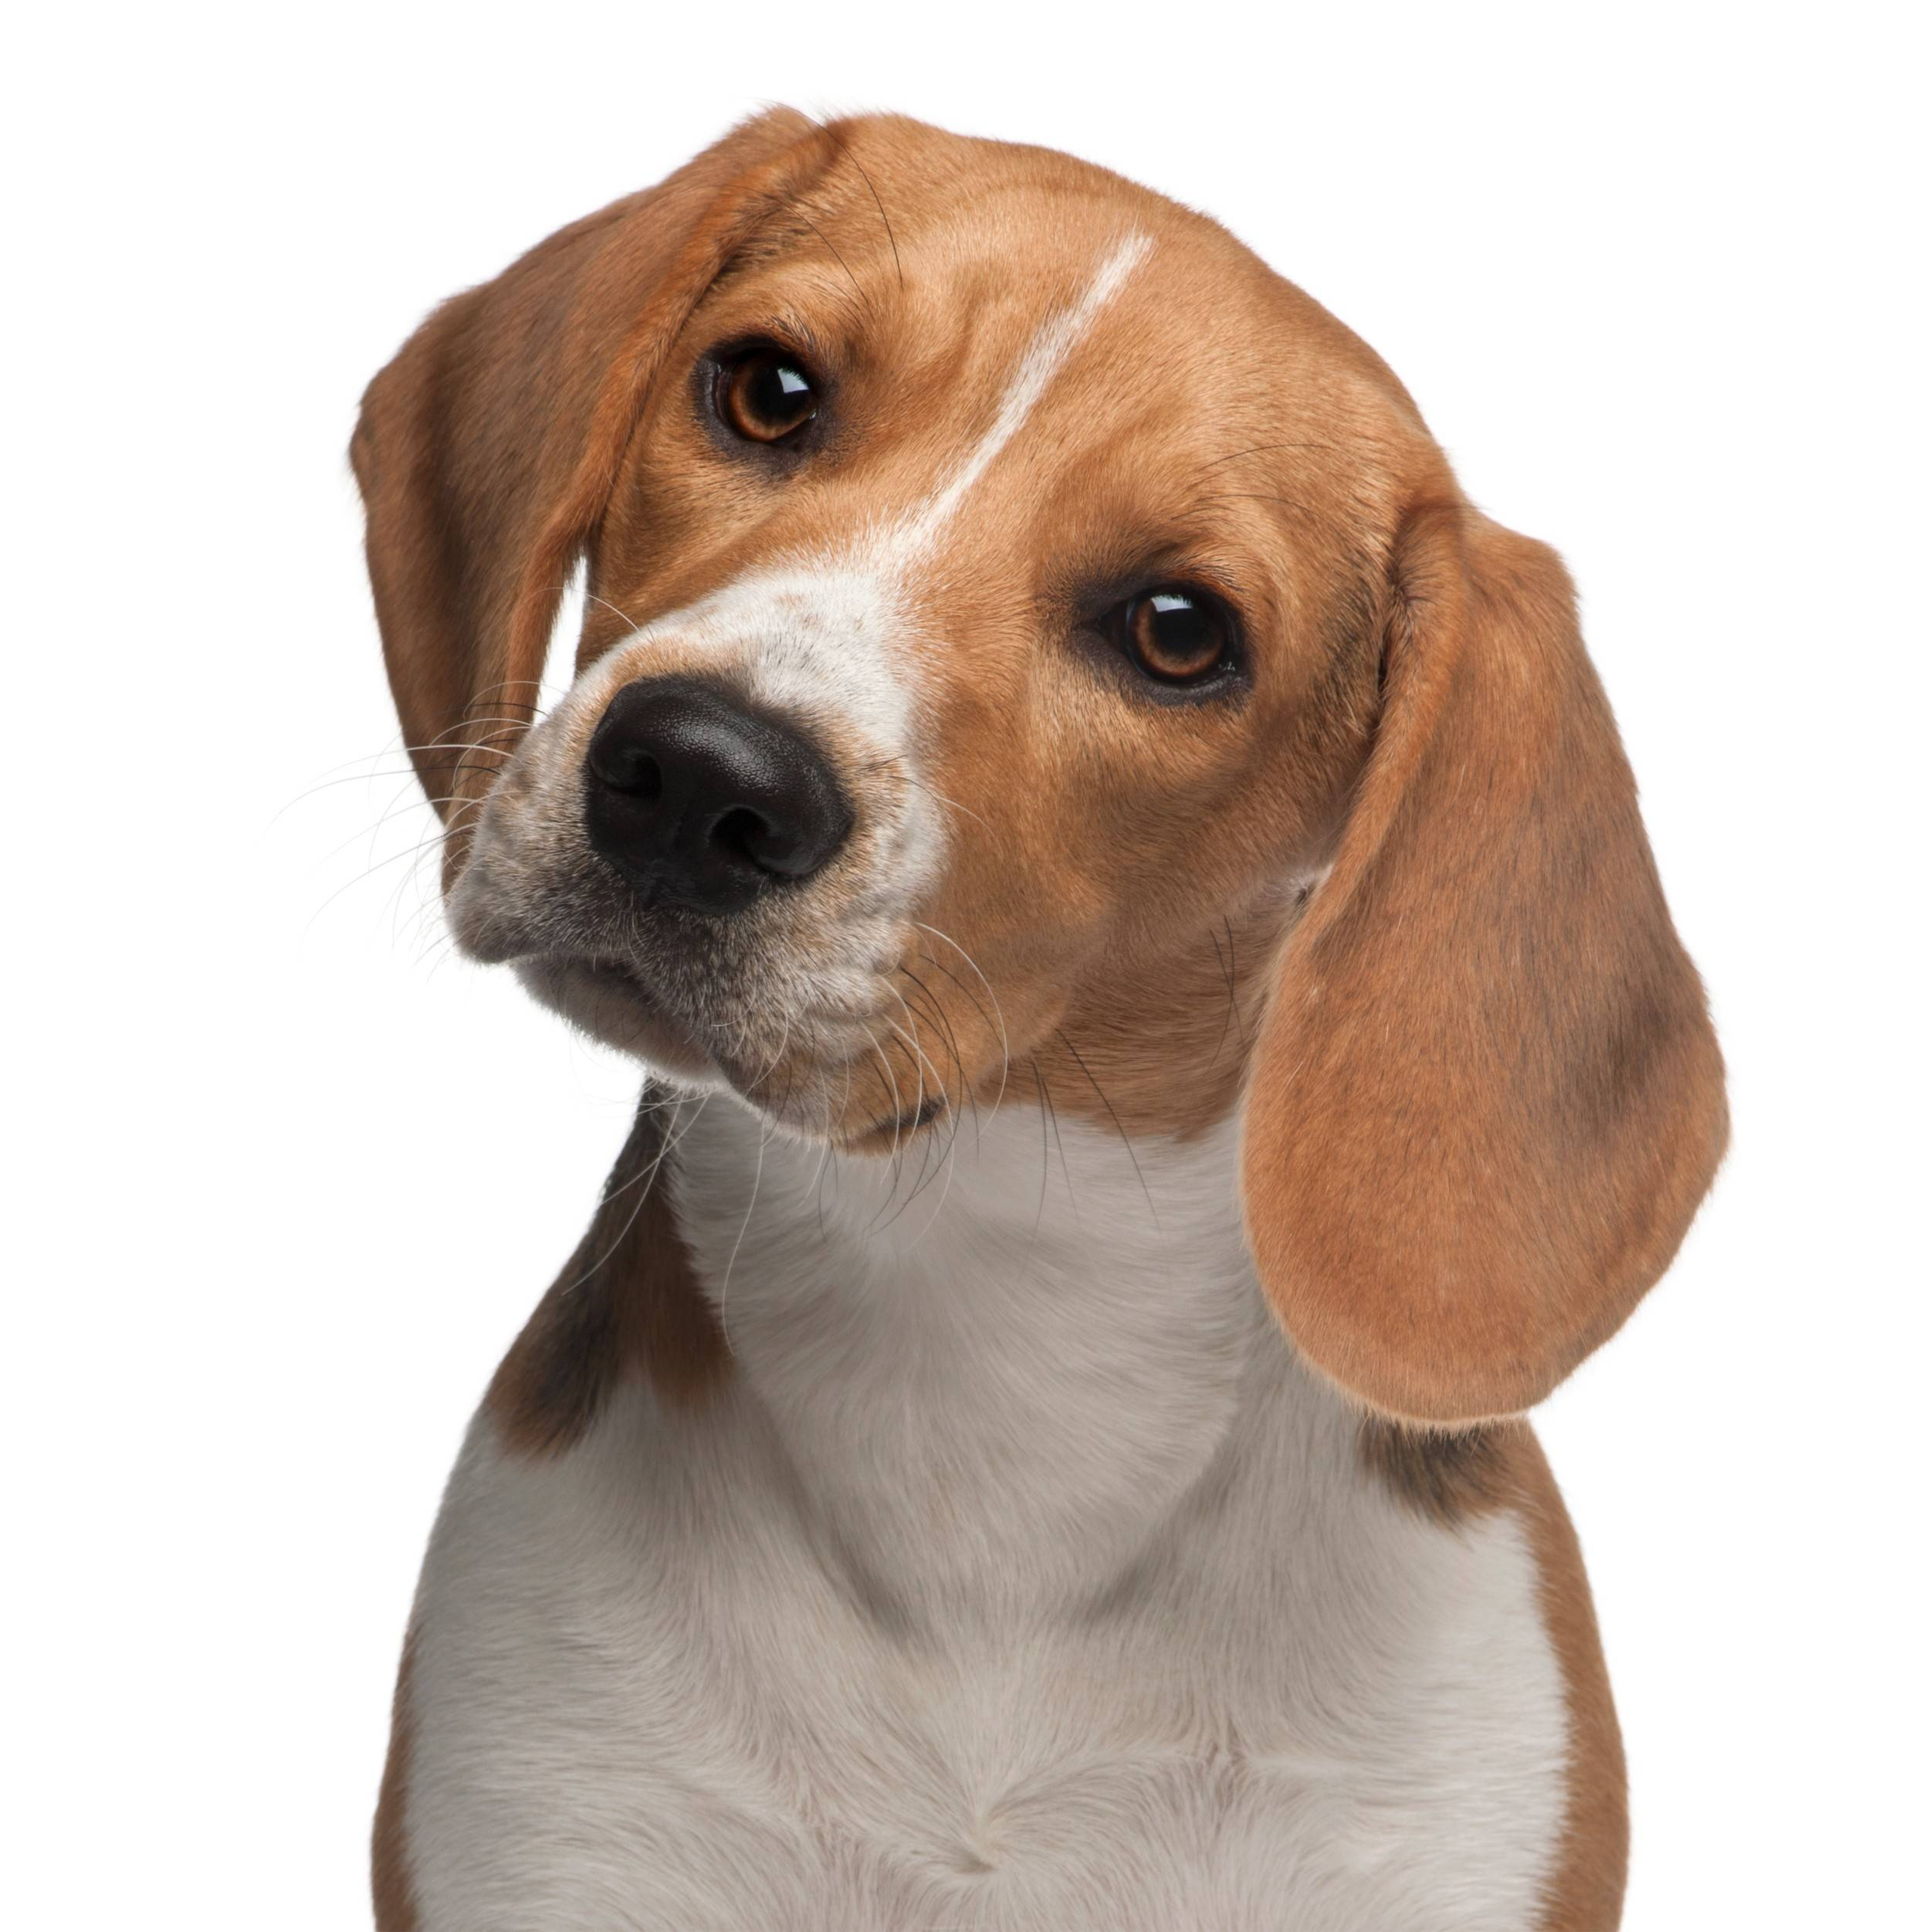 Beagle enthusiasts are invited to spend the day with their canine friends at Beaglefest.